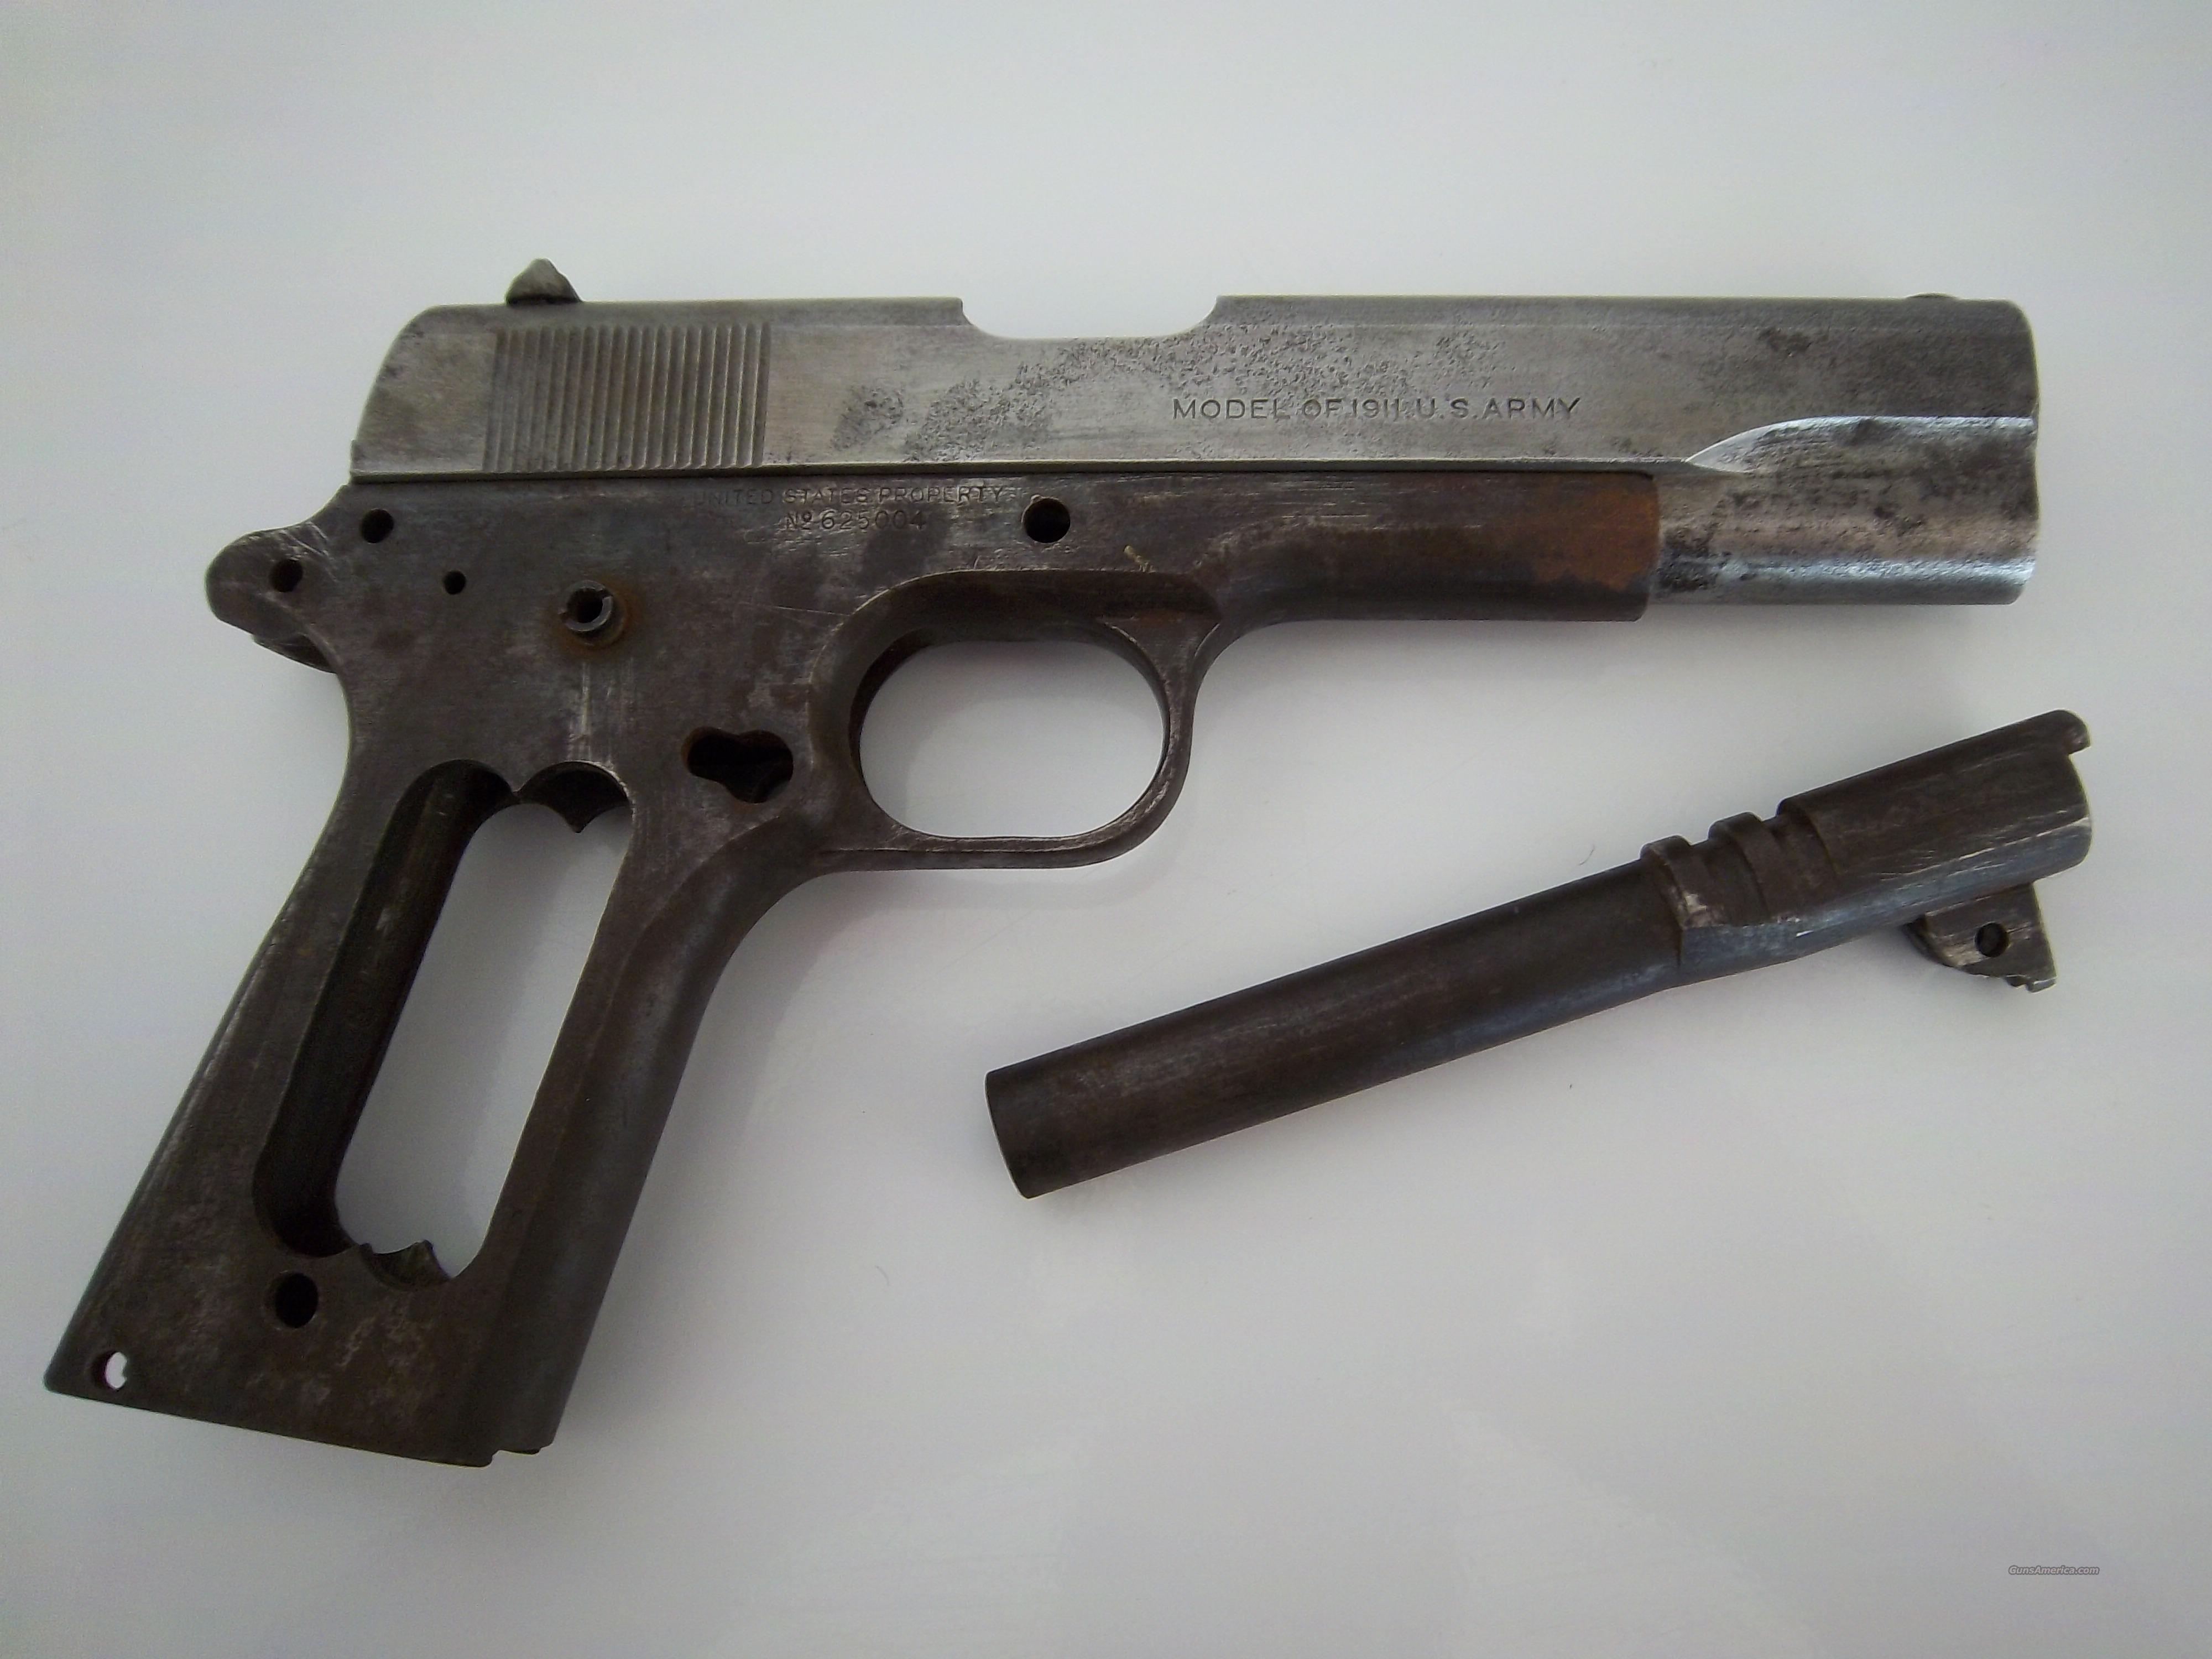 WWI COLT 1911 US ARMY FRAME/SLIDE/BARREL for sale